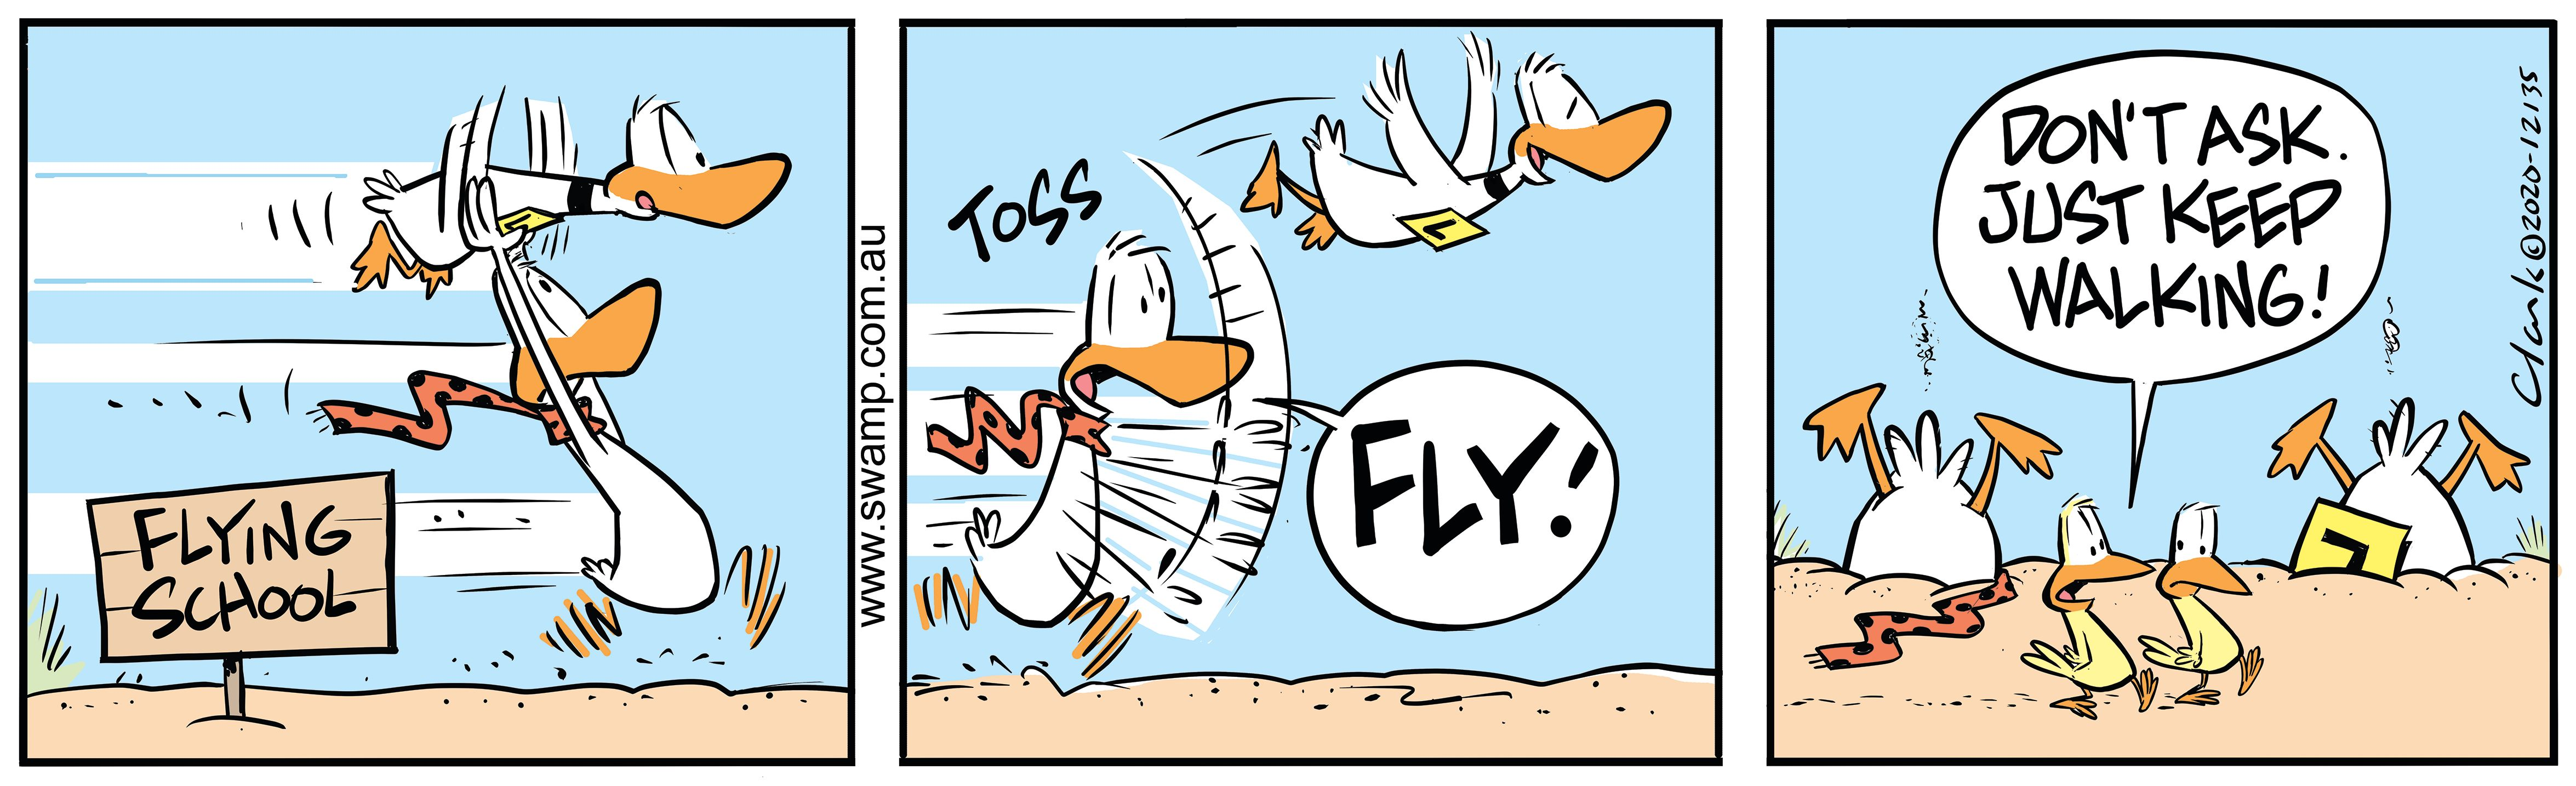 Ding Duck Take-off As